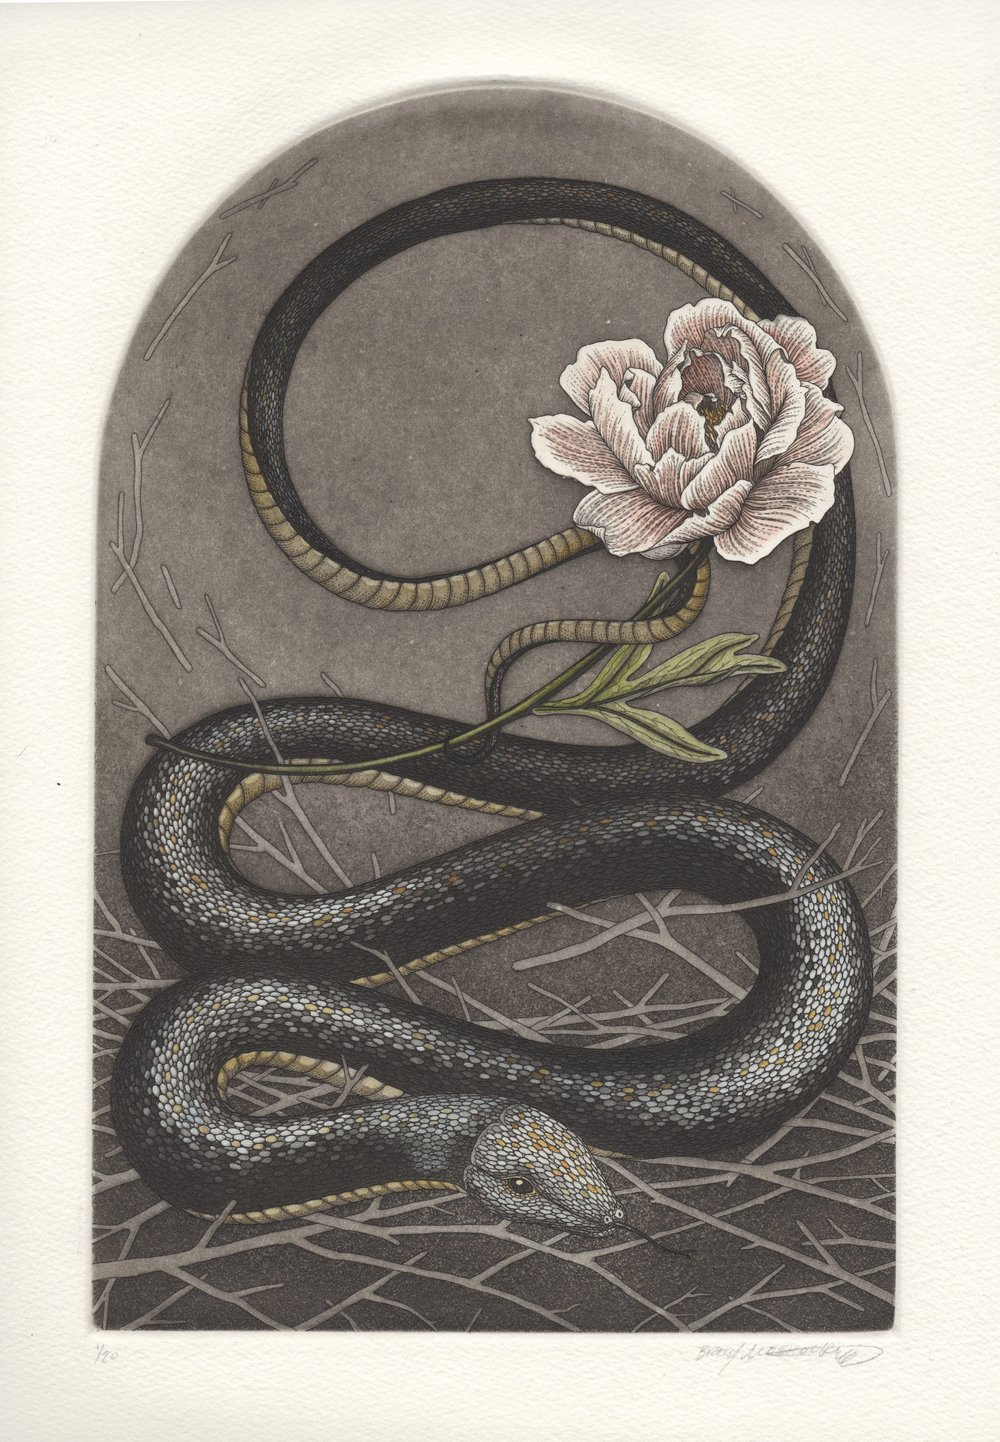 Spirit Animal Alter II: Black Snake